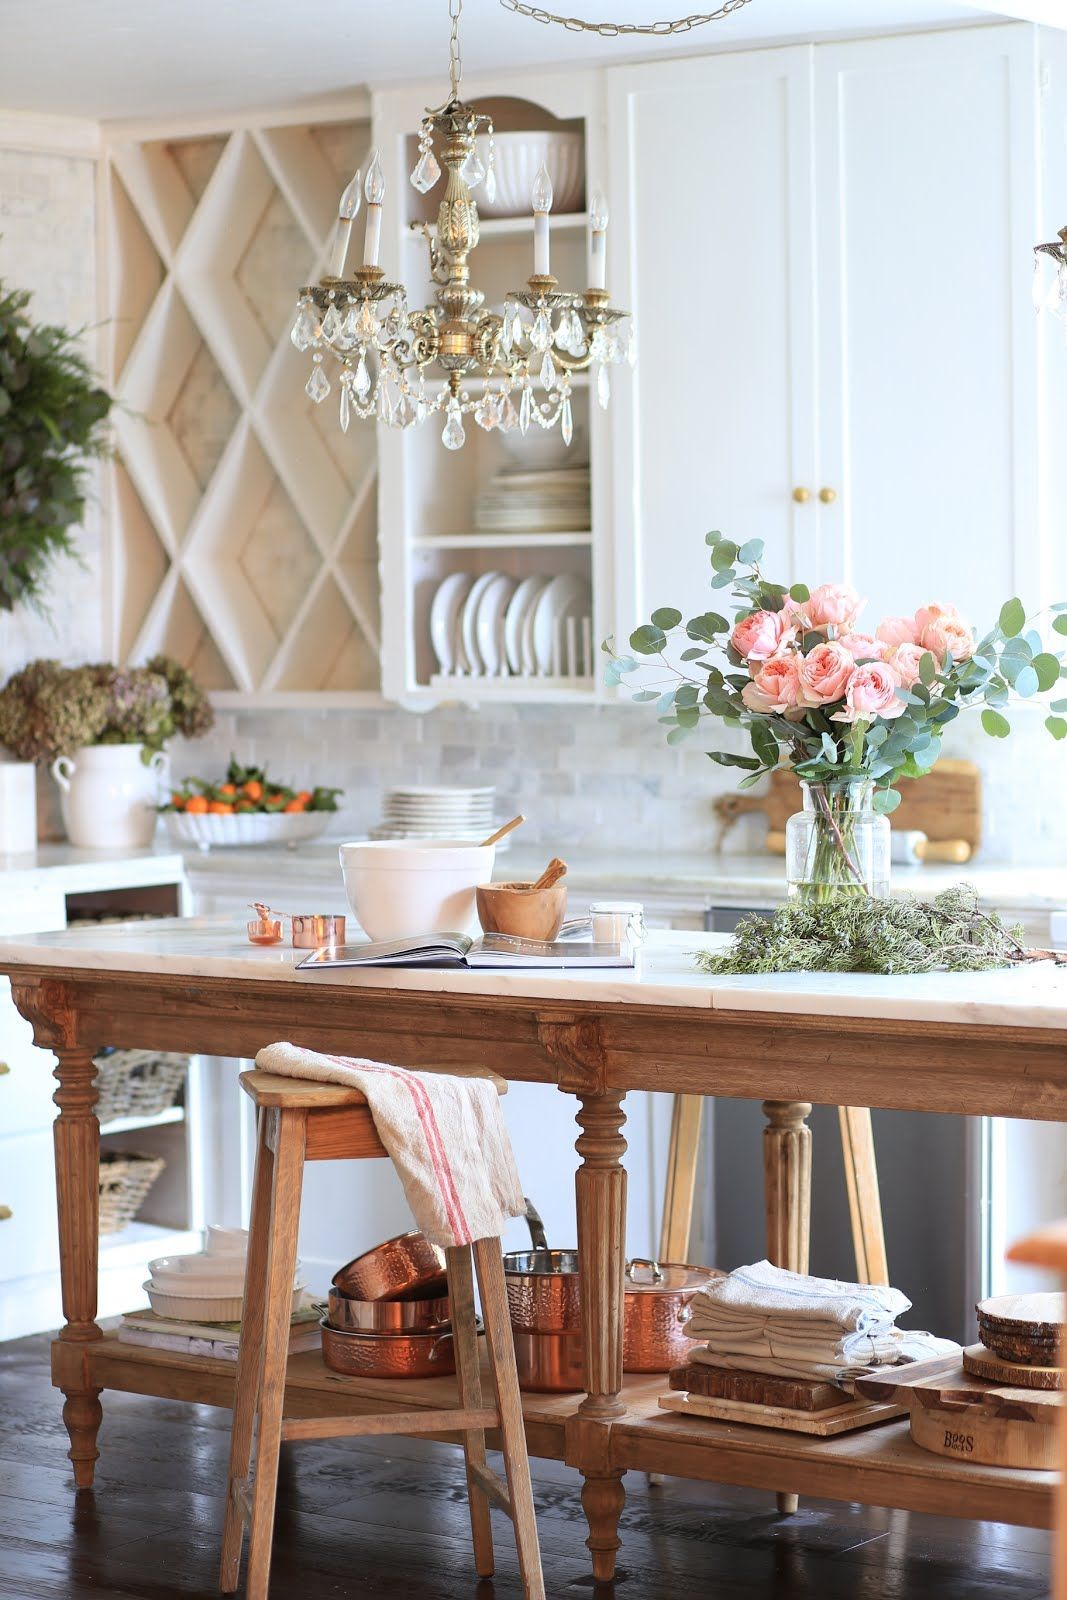 Photo of 4 ways to add French farmhouse charm to your kitchen